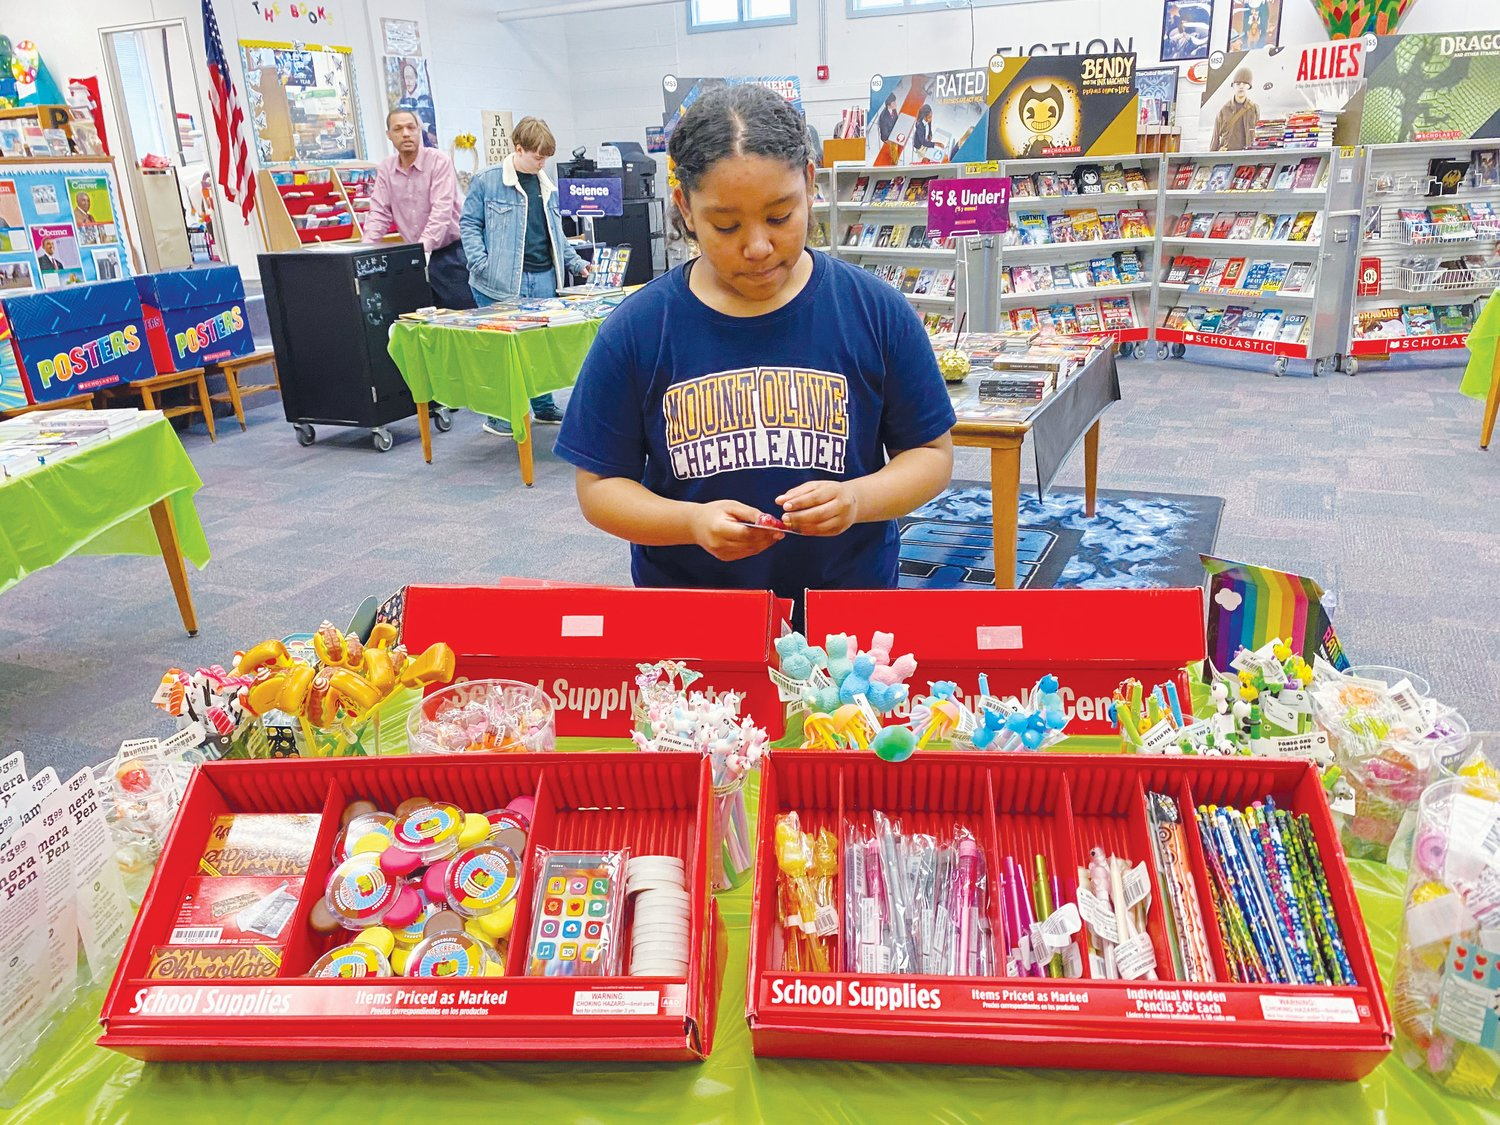 Kids make selections at local book fair.Sixth-grader Shaily Quim-King makes a careful selection at the novelty section during last week's book fair at Mount Olive Middle School.